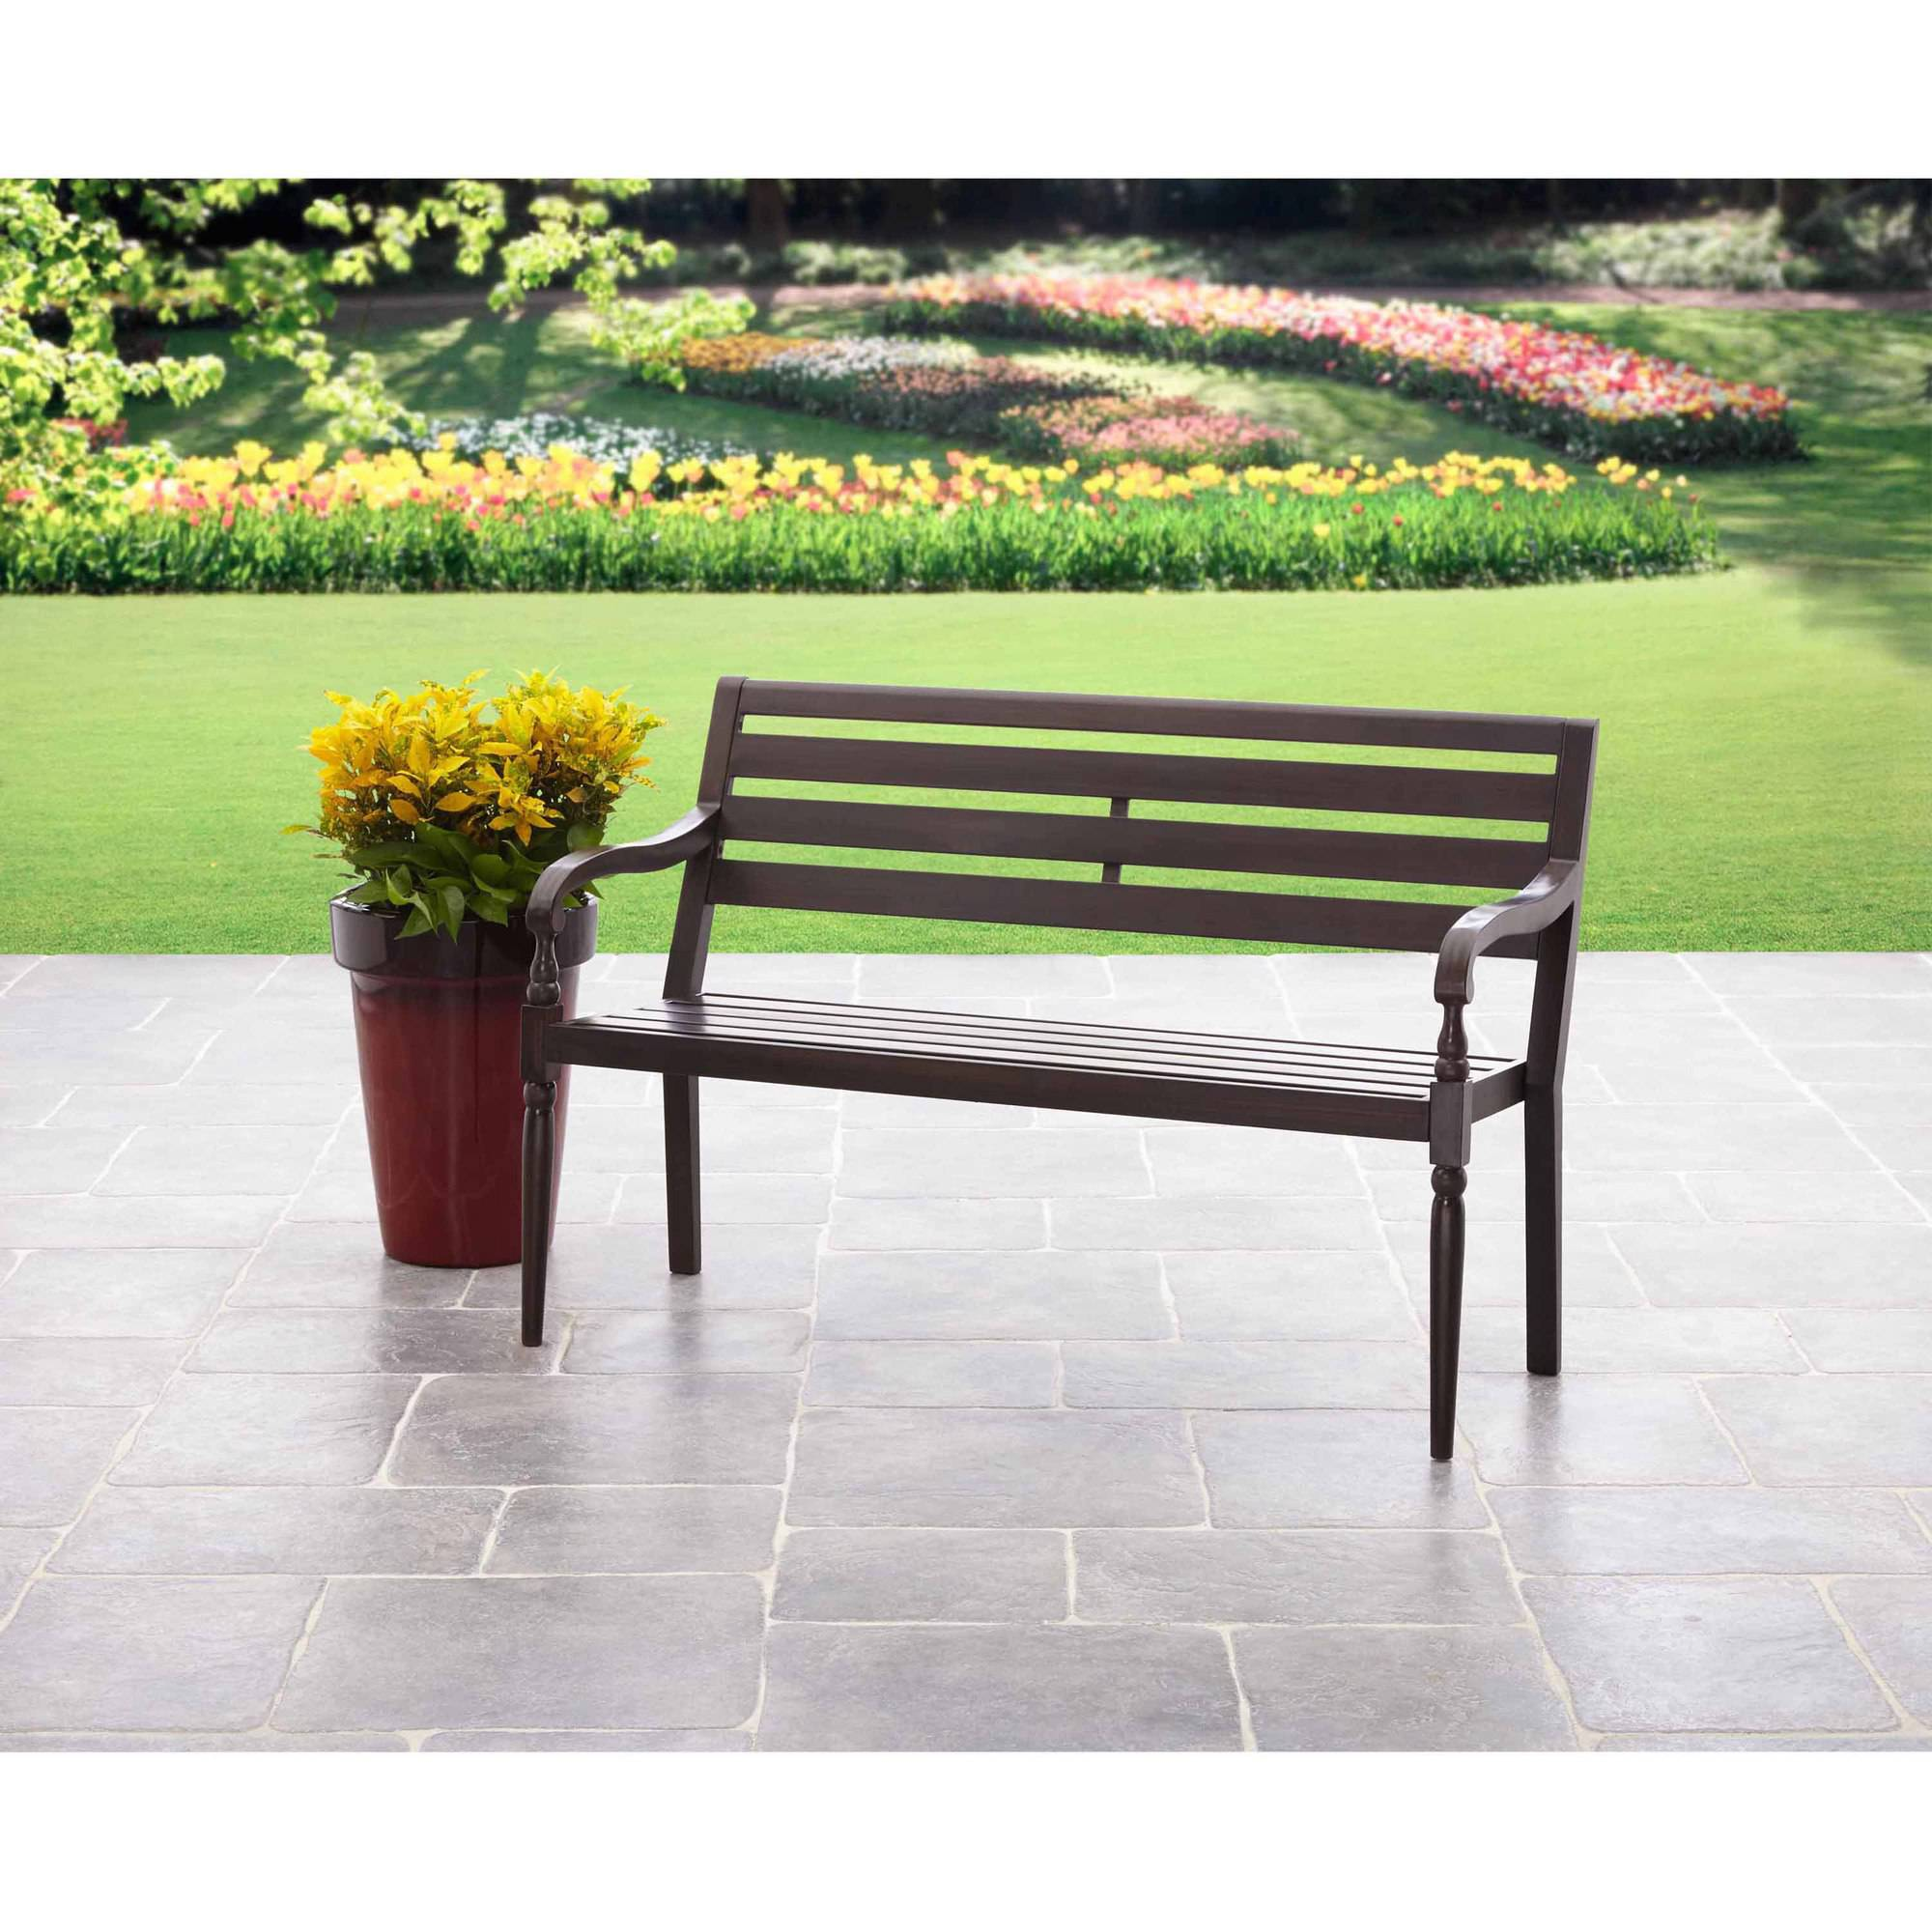 Mainstays Slat Outdoor Garden Bench, Black   Walmart.com